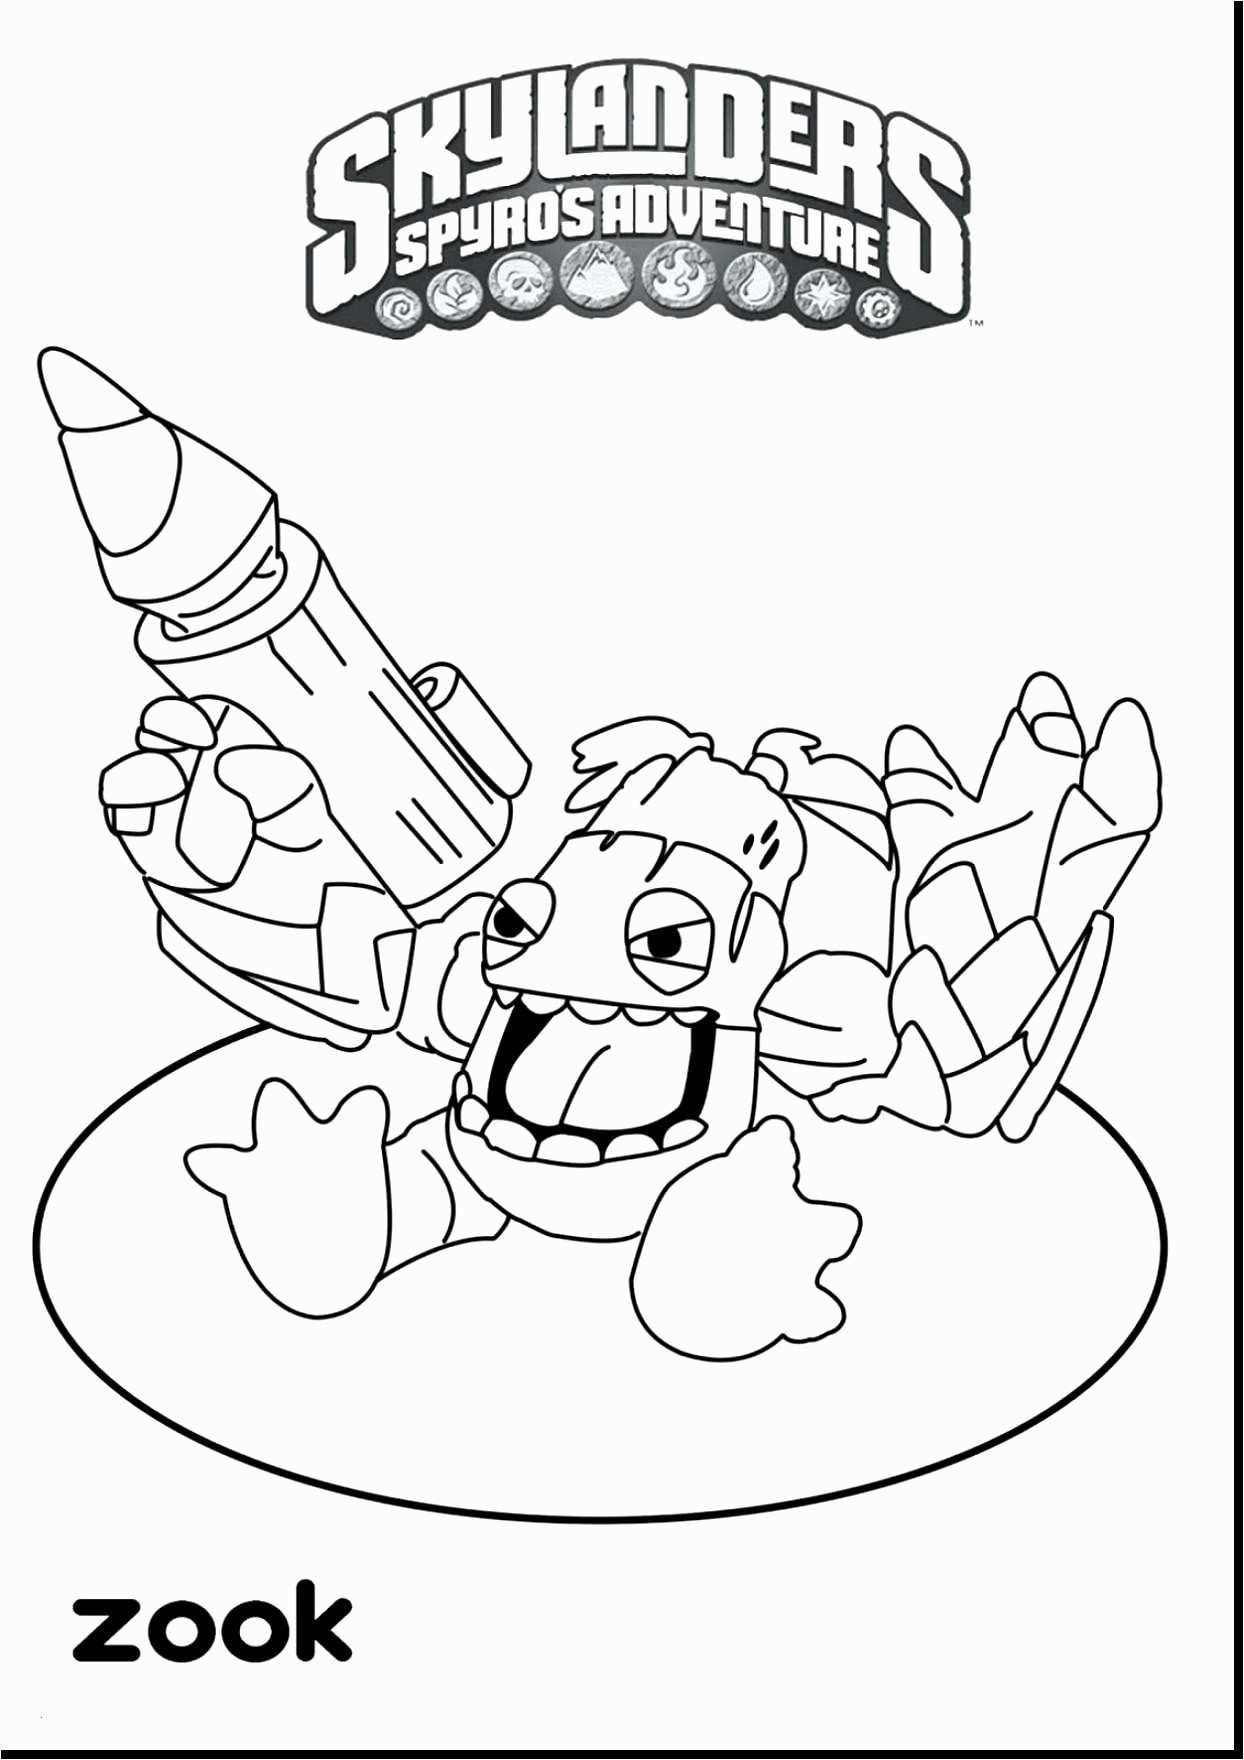 Happy Birthday Coloring Pages For Friends Watch Dogs Coloring Sheets New Coloring Pages Design Coloring Pages